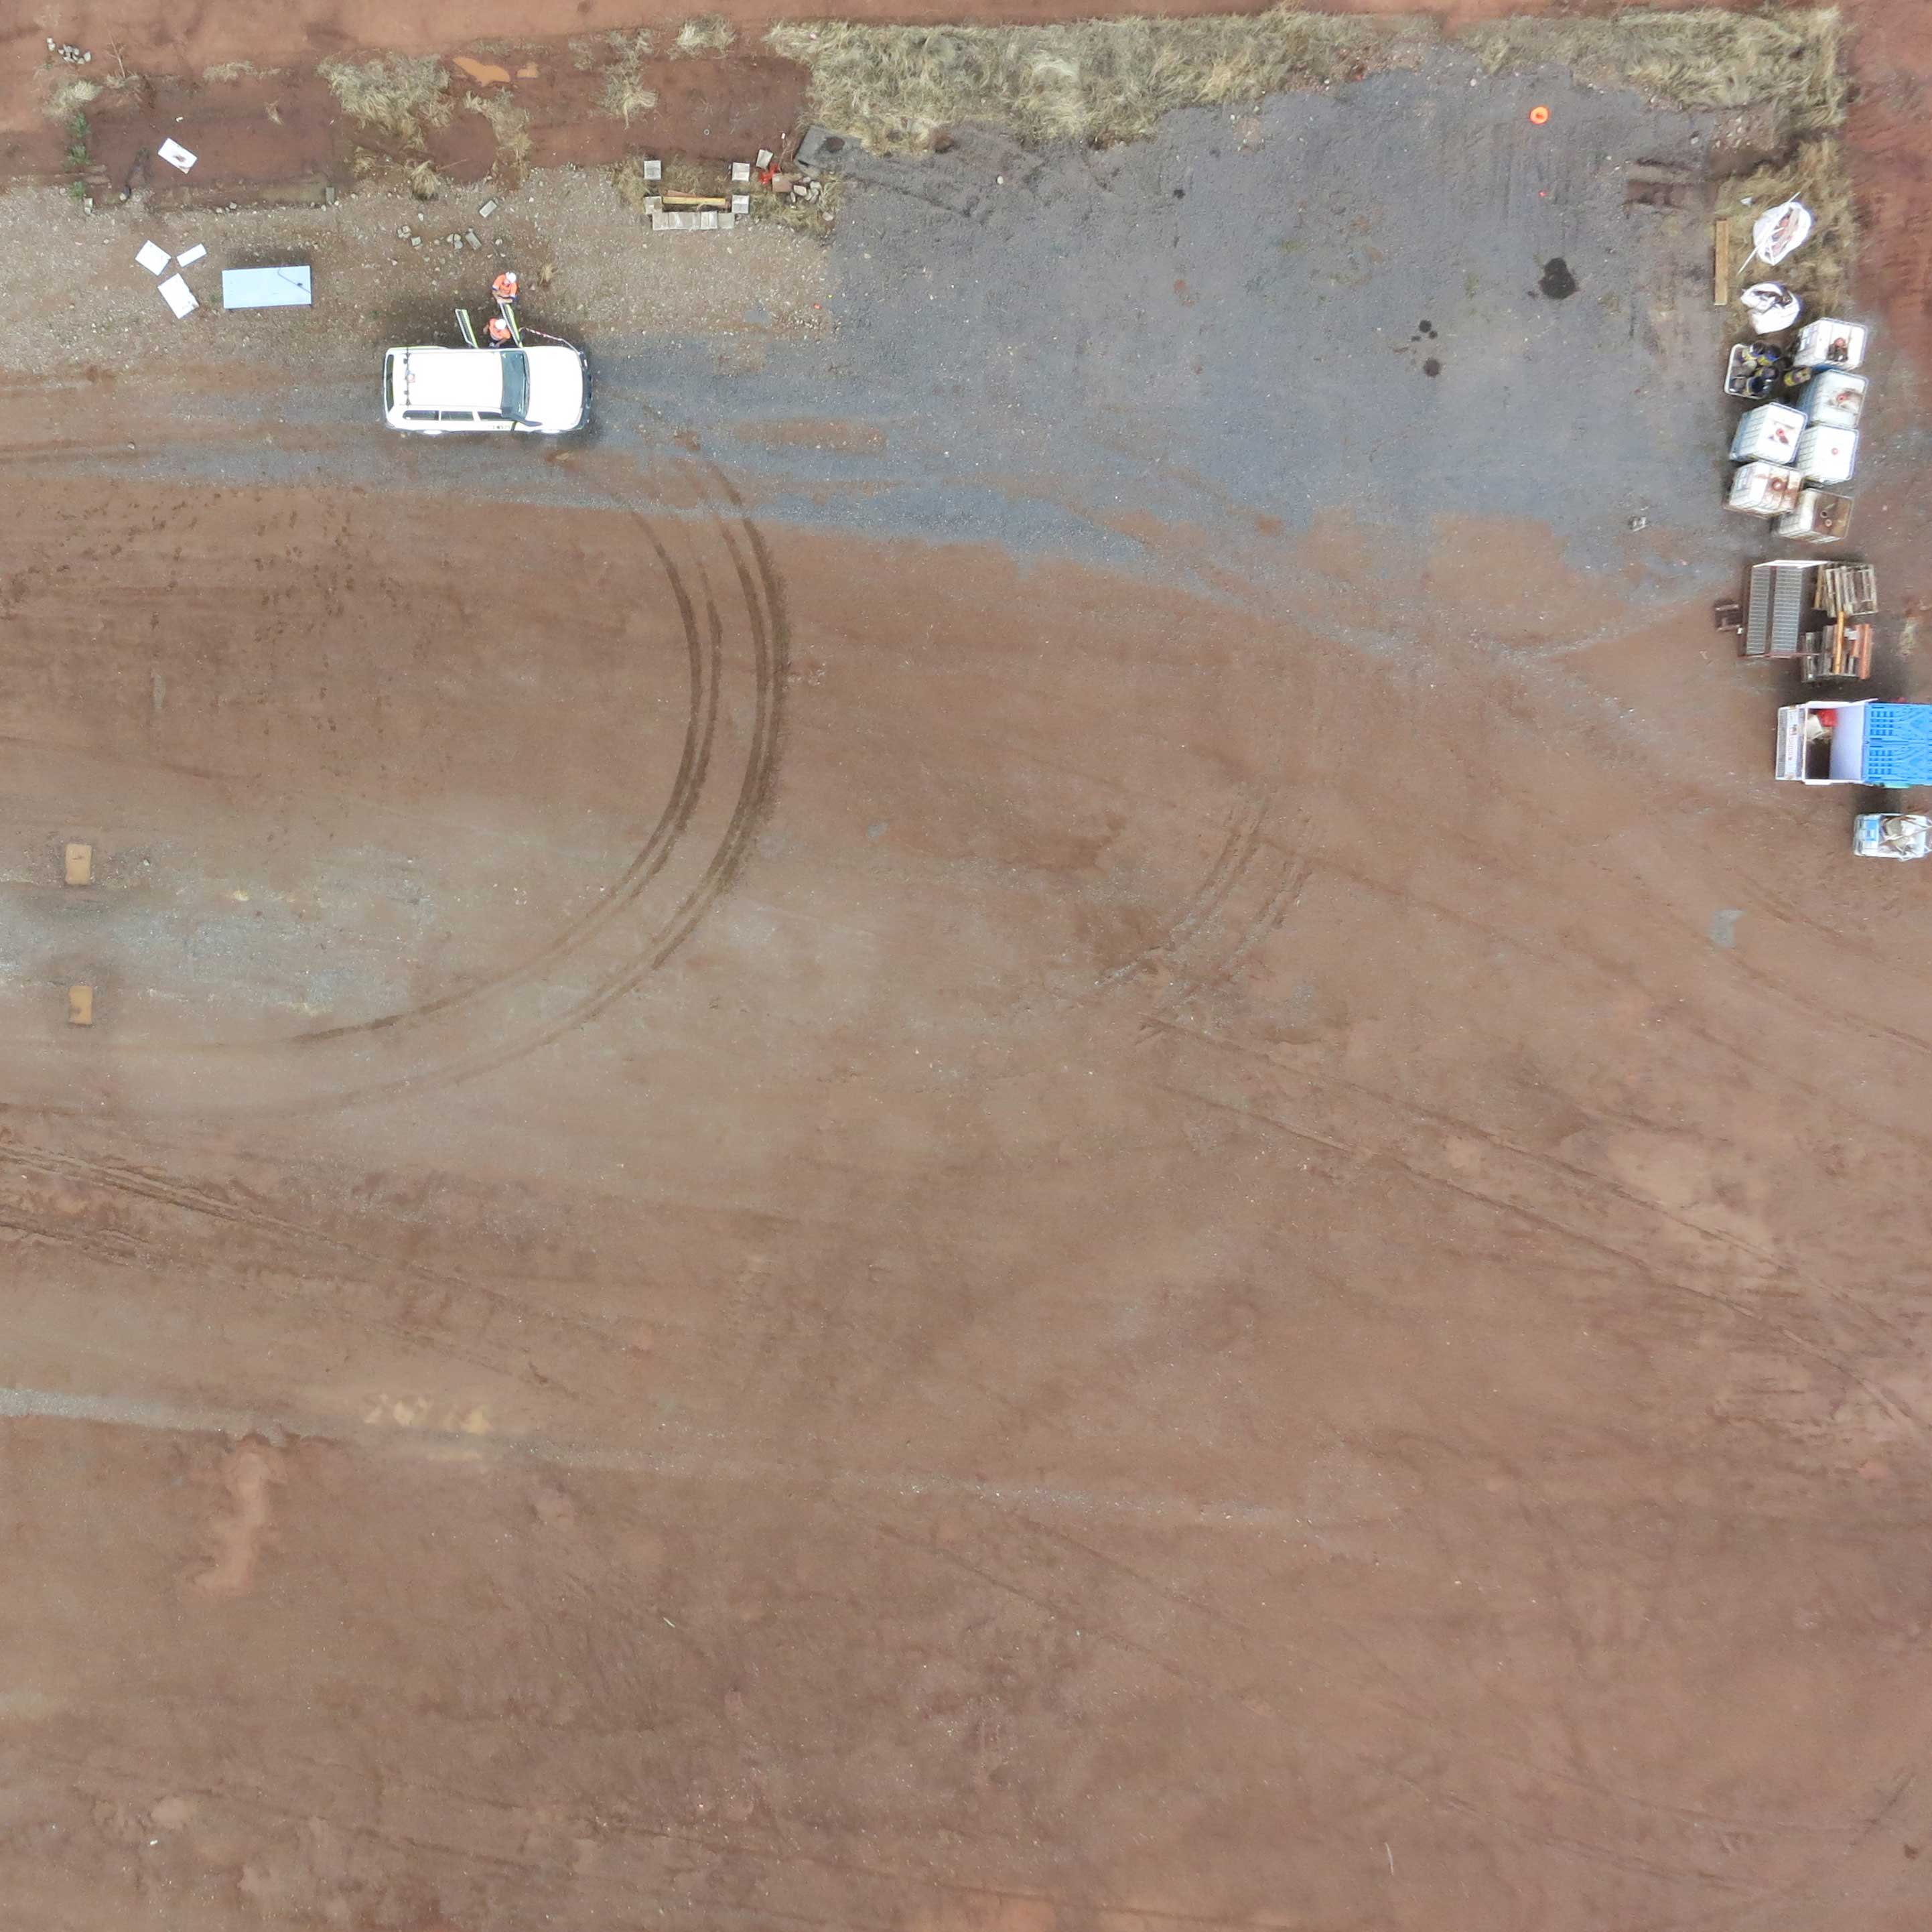 aerial mapping australia, aerial mapping drone, aerial survey companies, aerial 3d mapping, what is my elevation, Aerial Inspections